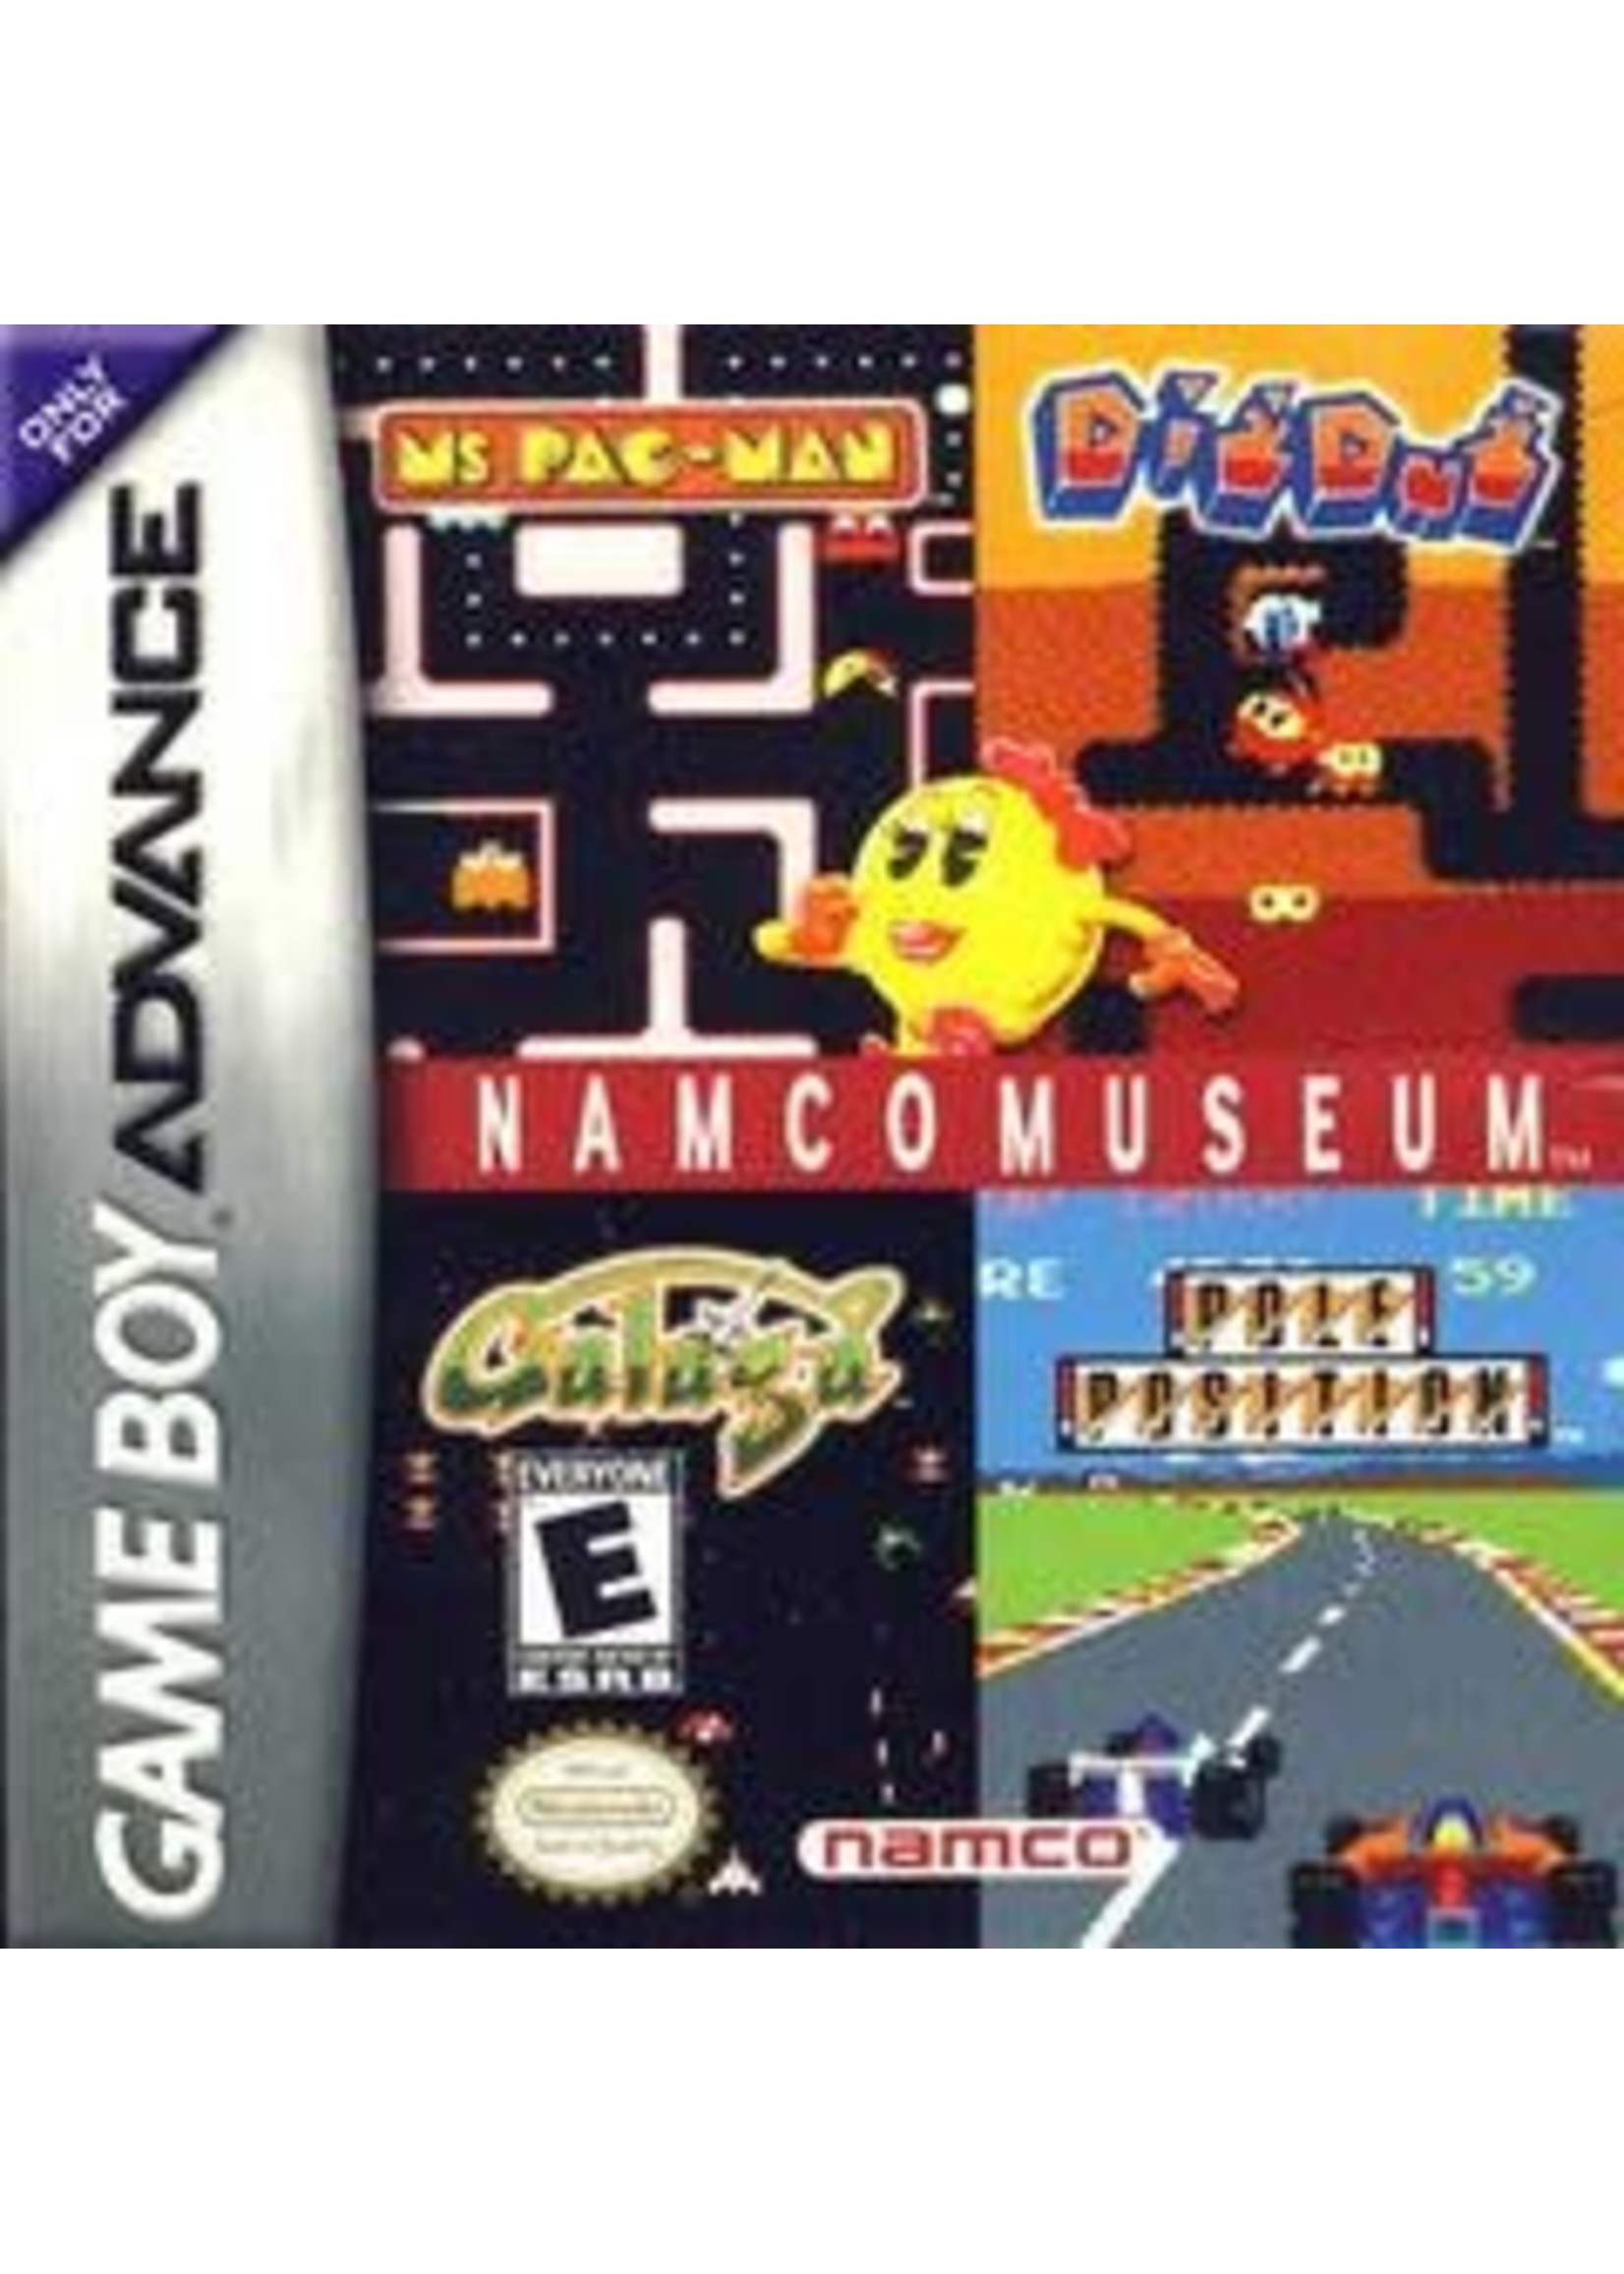 Namco Museum GameBoy Advance